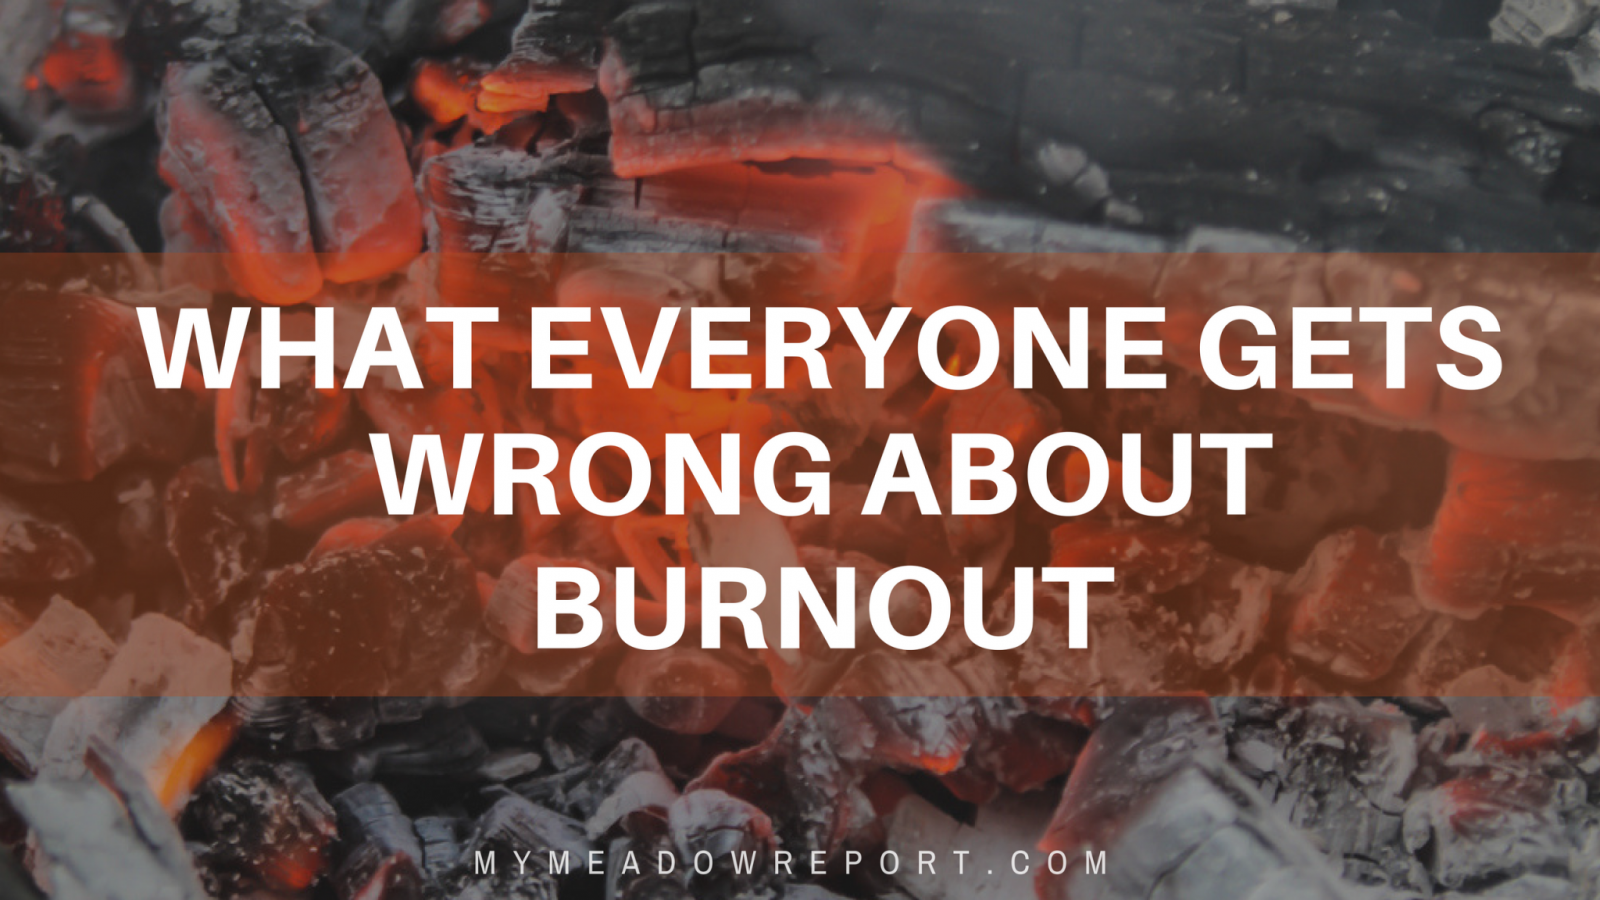 What Everyone Gets Wrong About Burnout